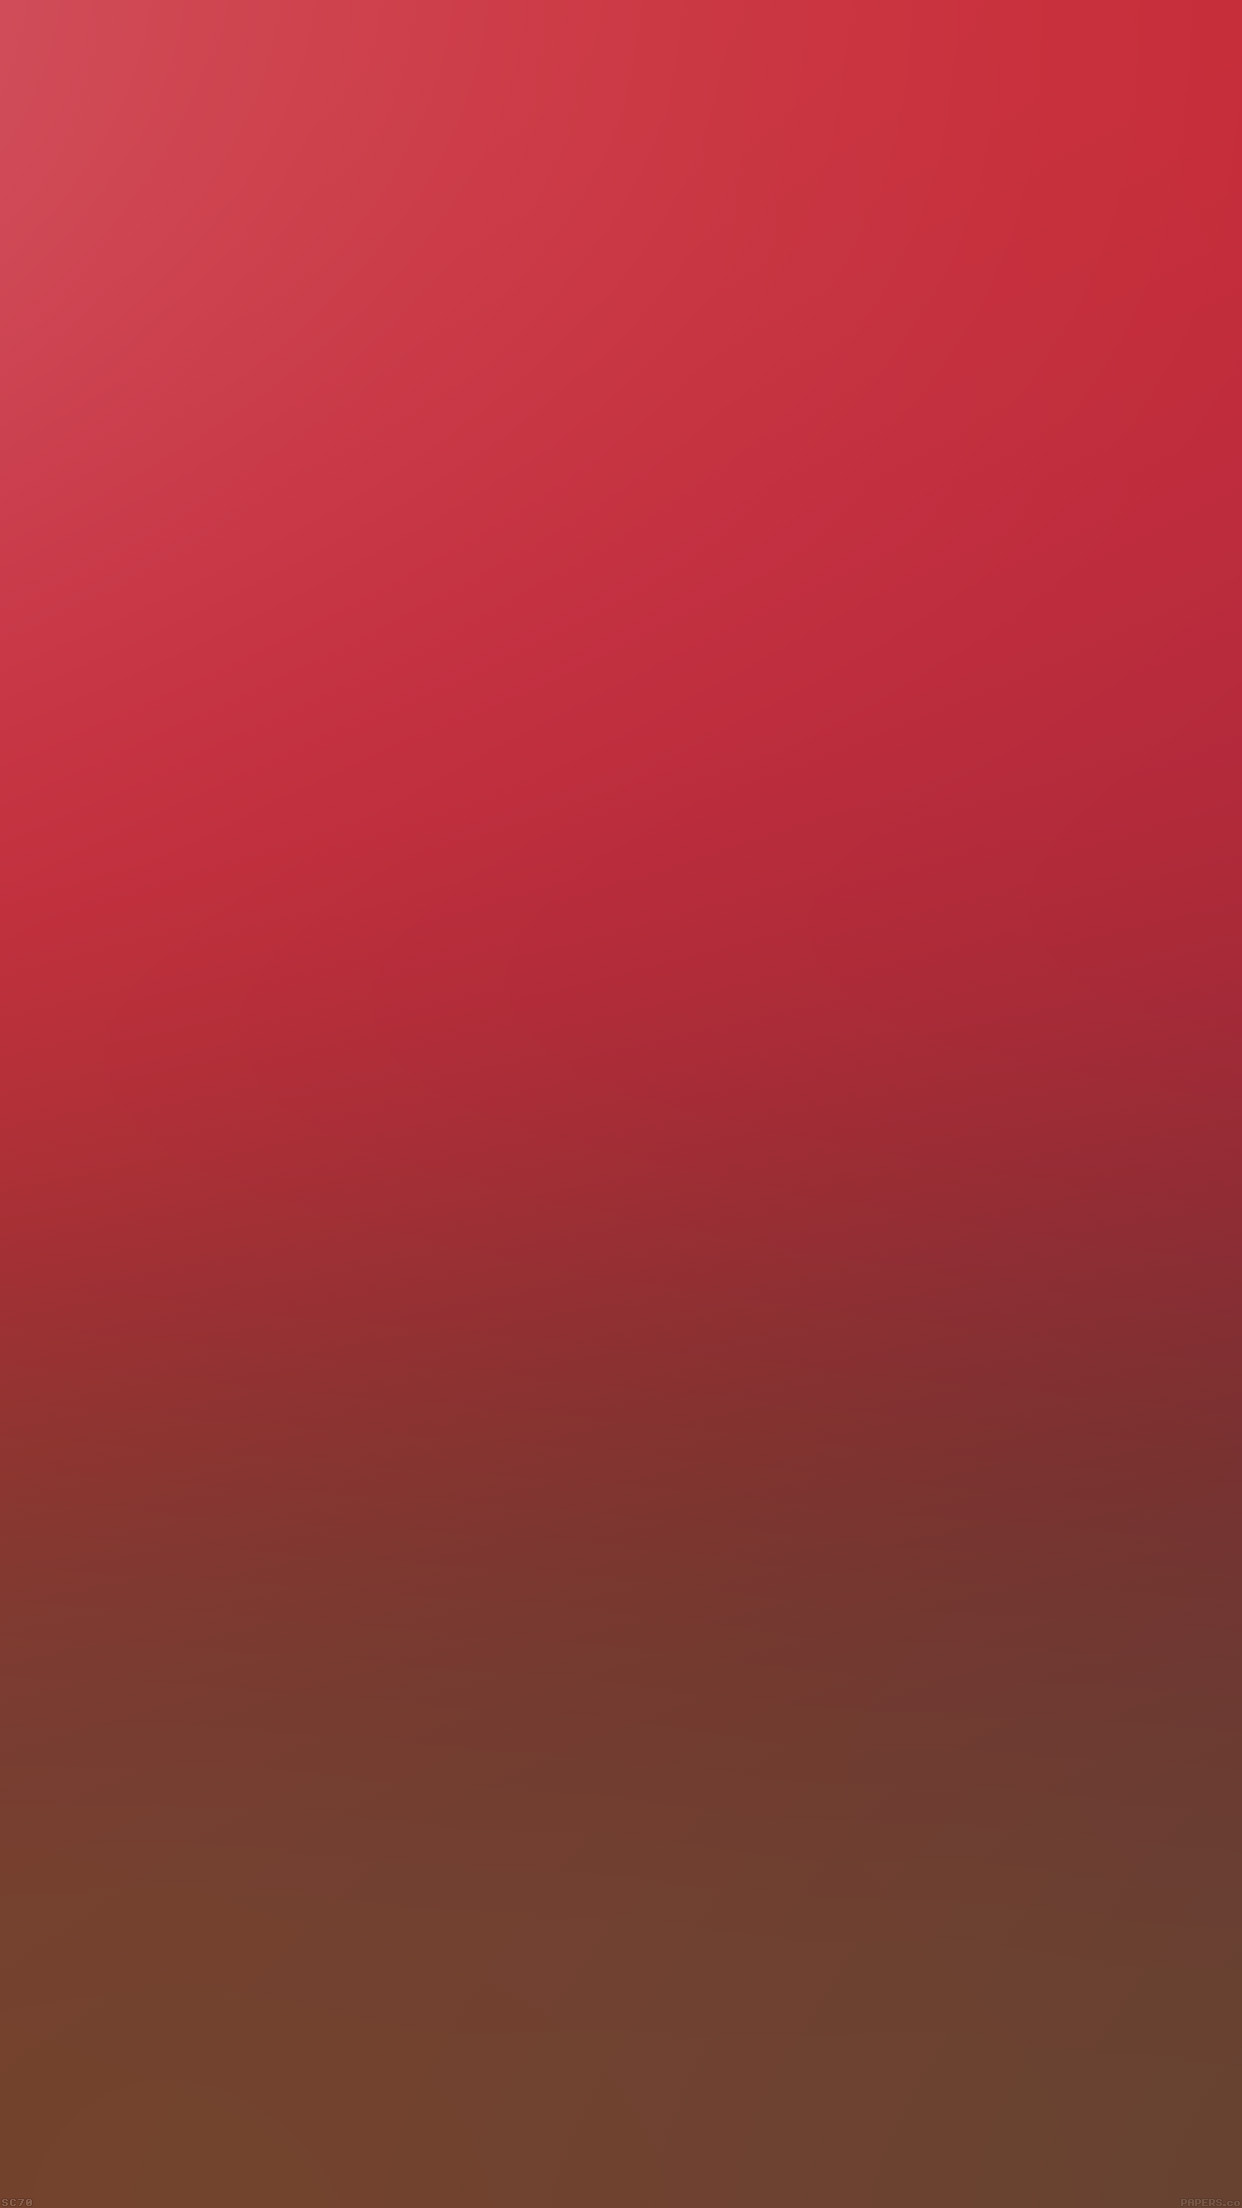 Iphone6papers Sc89 Red Velvet Cake Blur